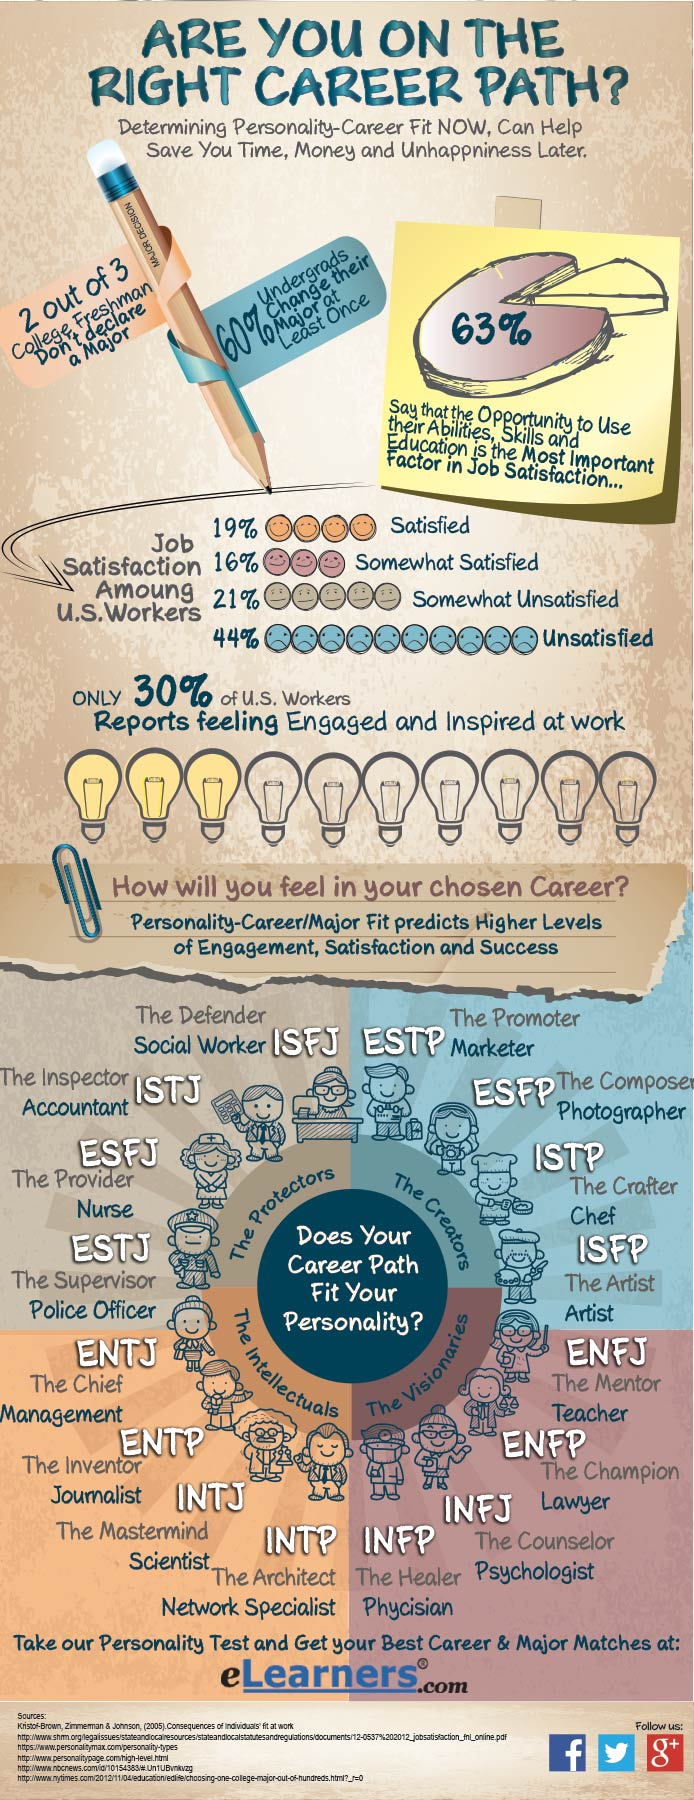 career path choices test